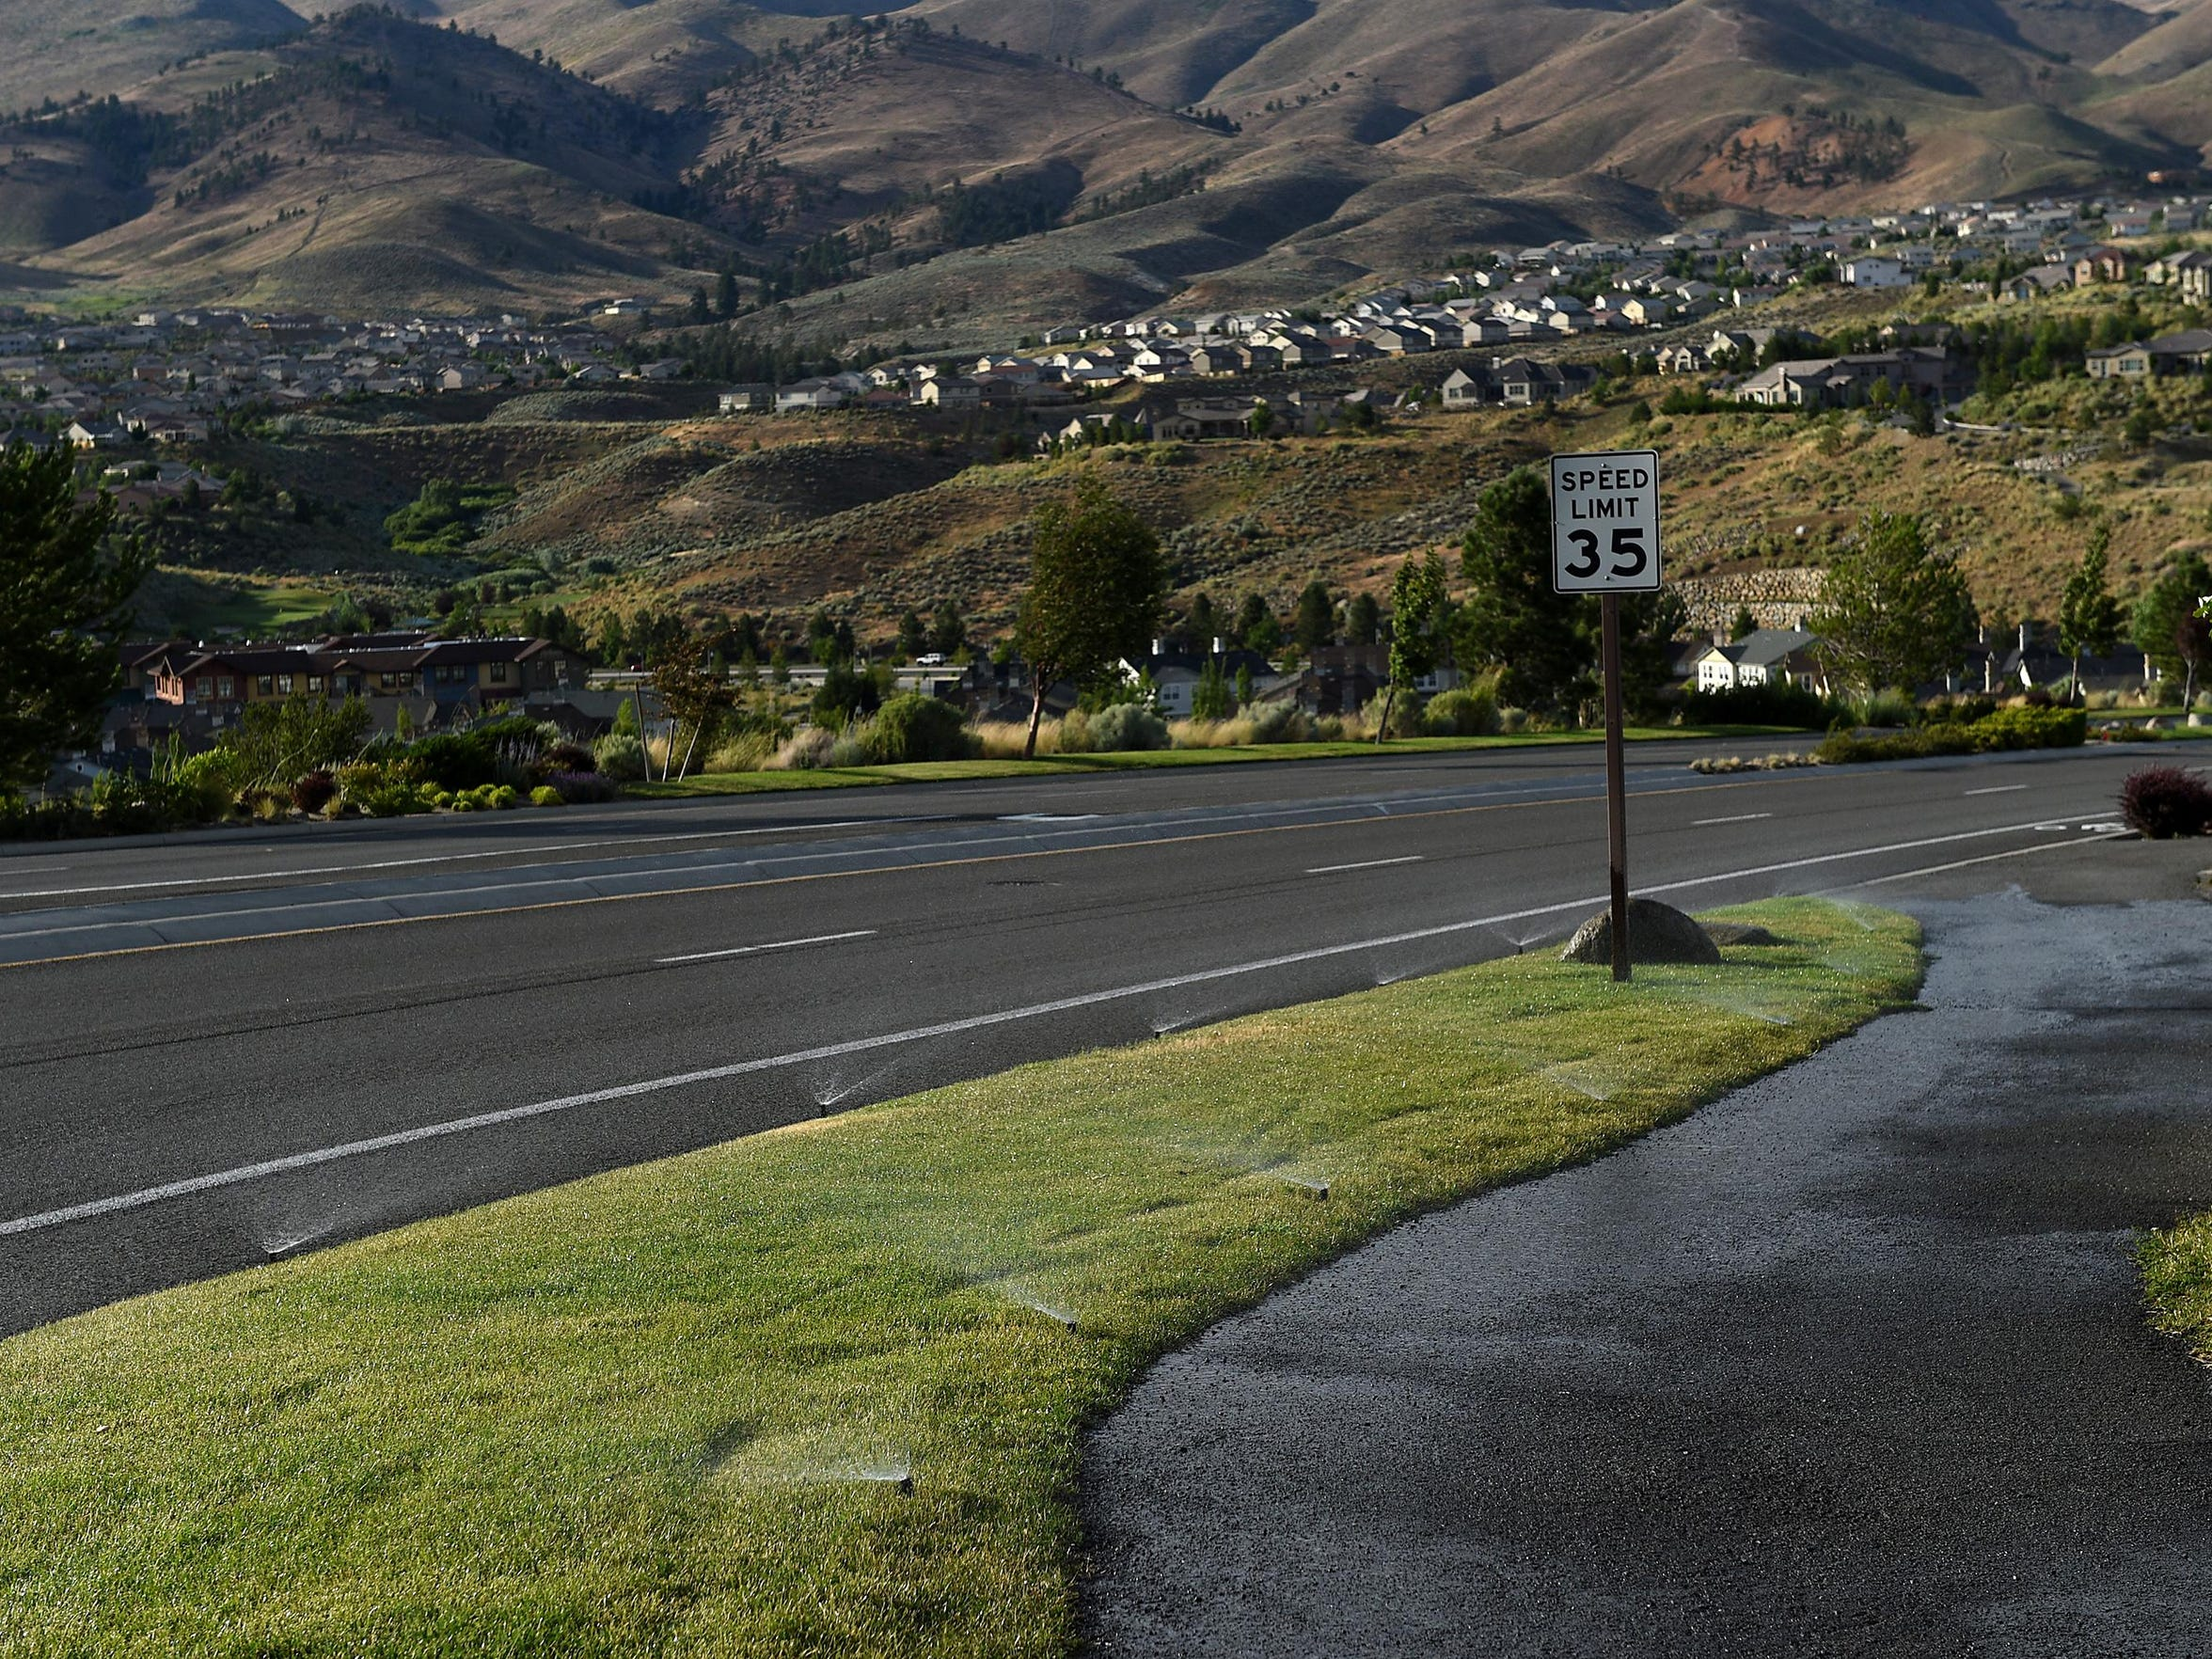 One of the common roadside areas at the Somersett development in northwest Reno.